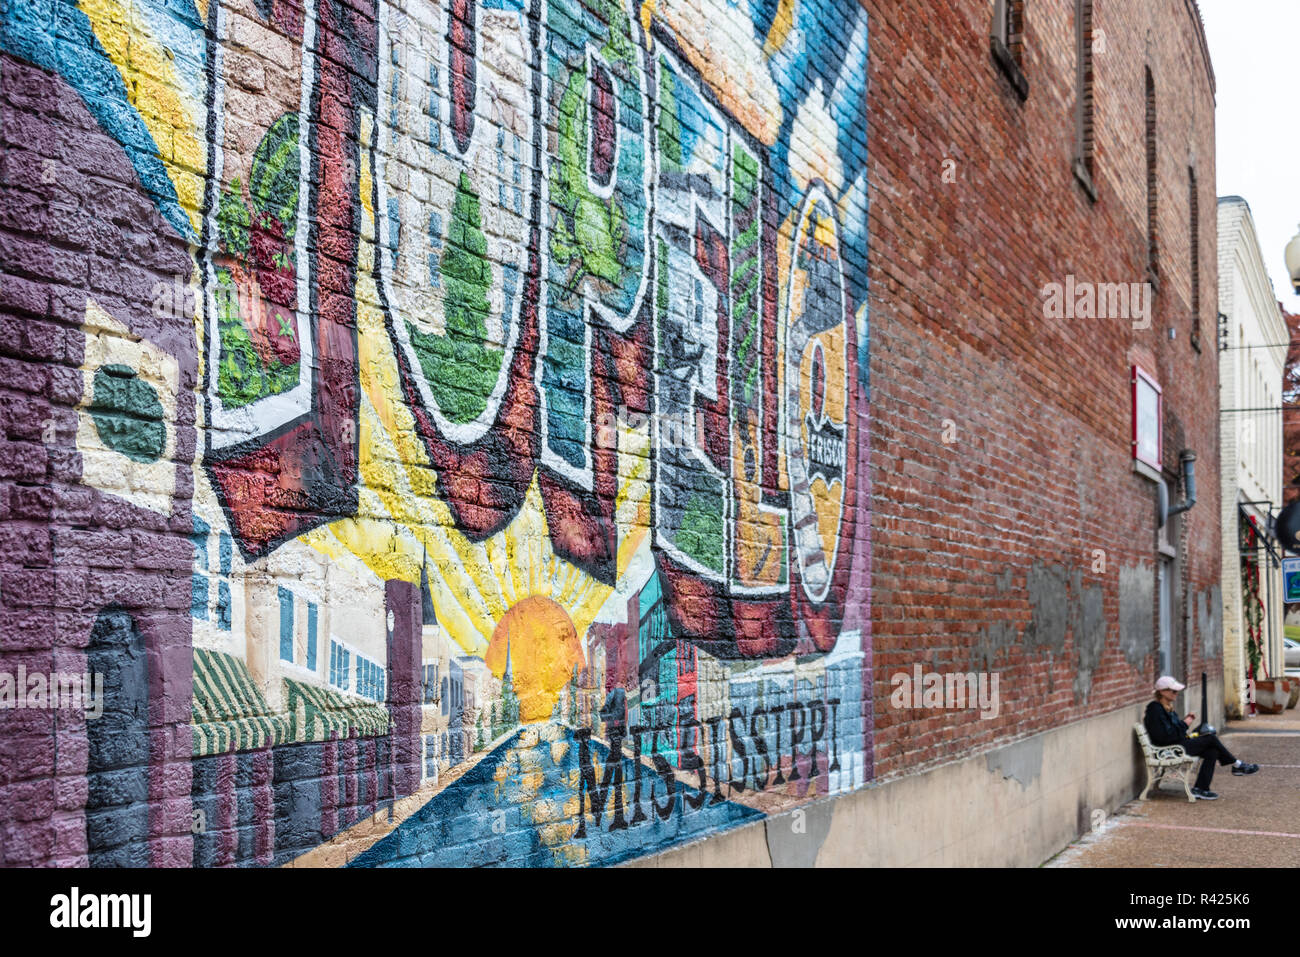 Downtown Tupelo, Mississippi wall mural art. (USA) - Stock Image